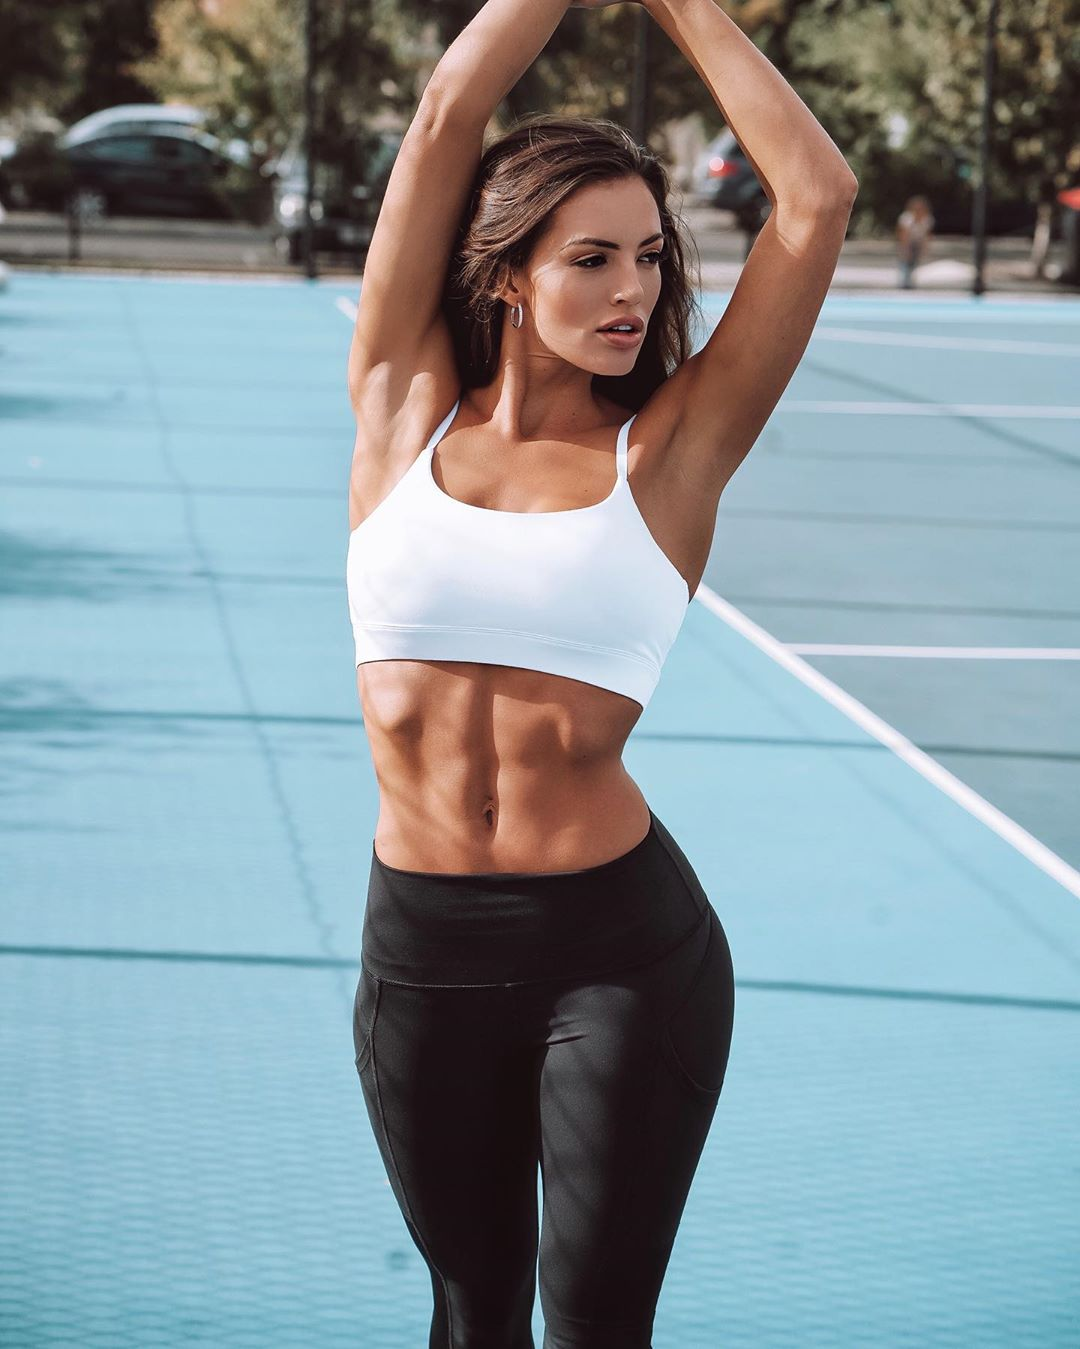 Amanda-Blanks-Wallpapers-Insta-Fit-Bio-4